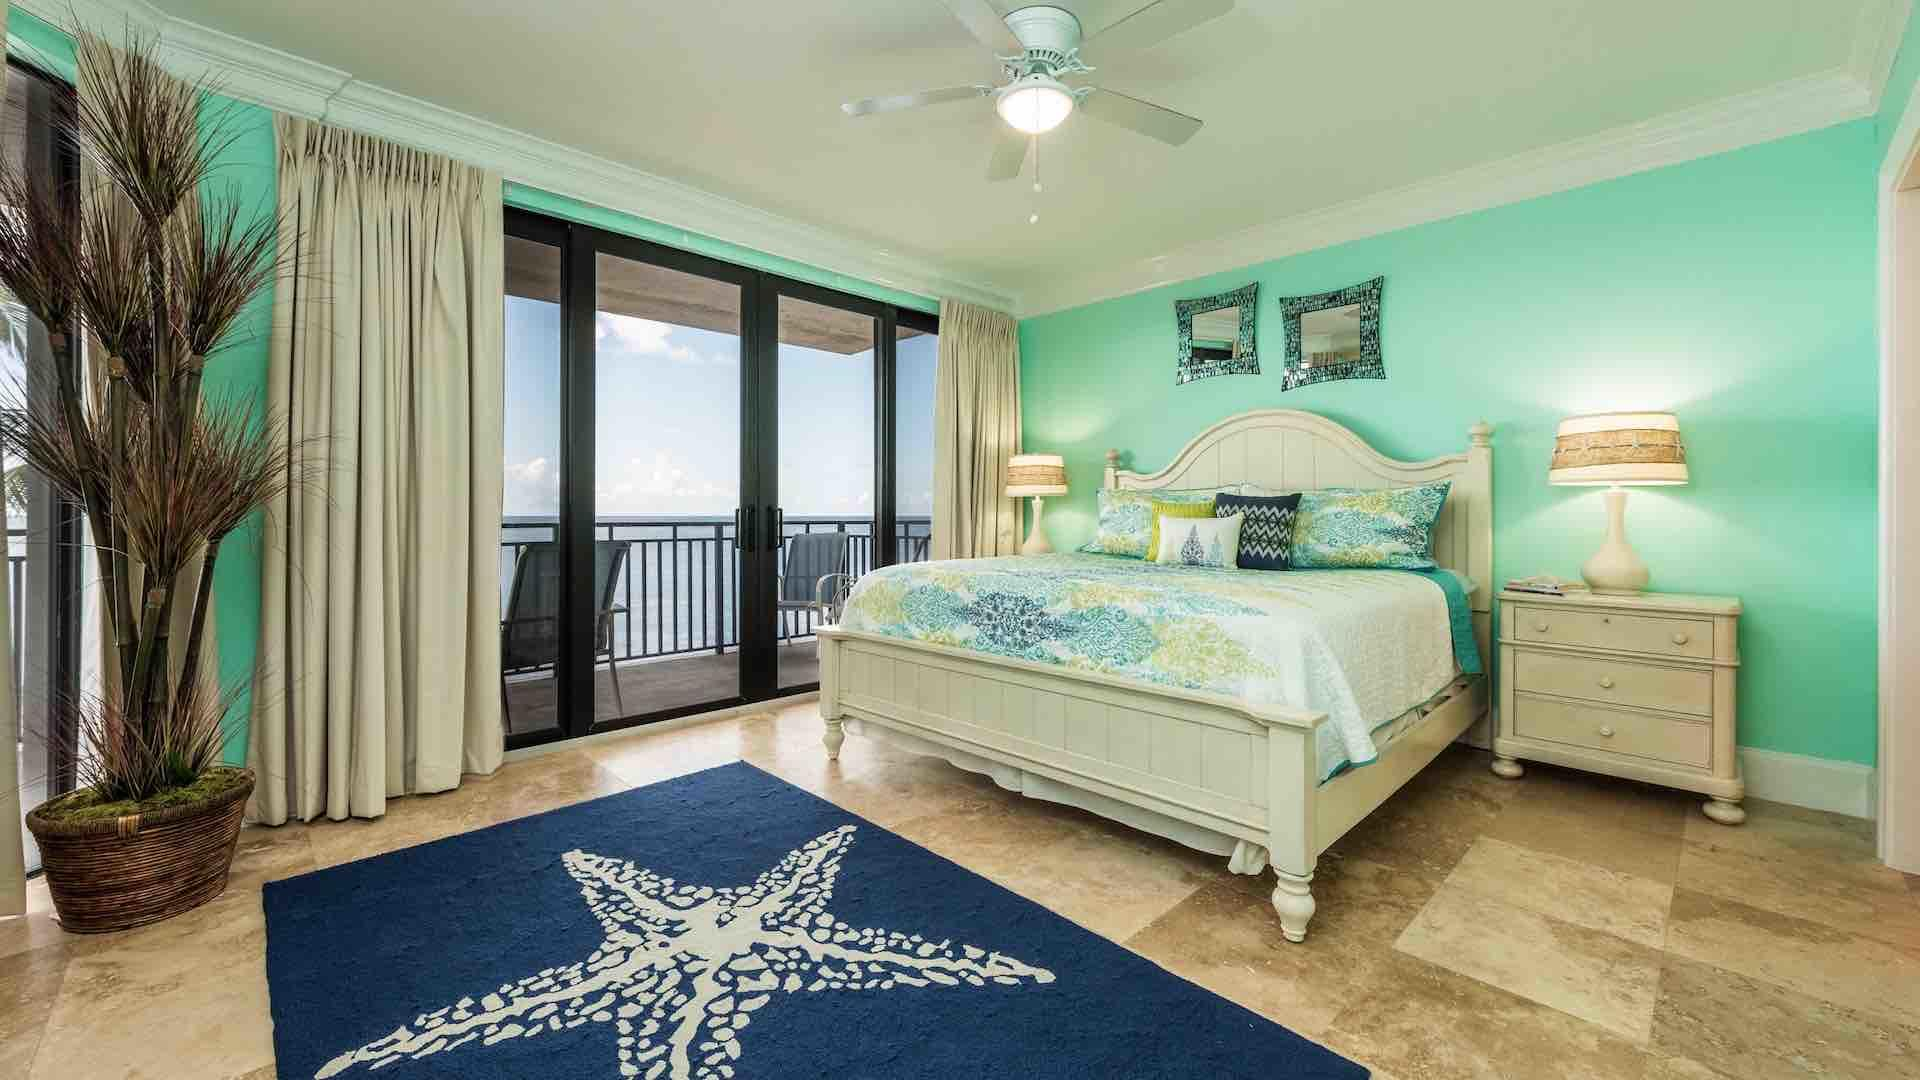 The master bedroom has direct access to the wrap-around balcony...